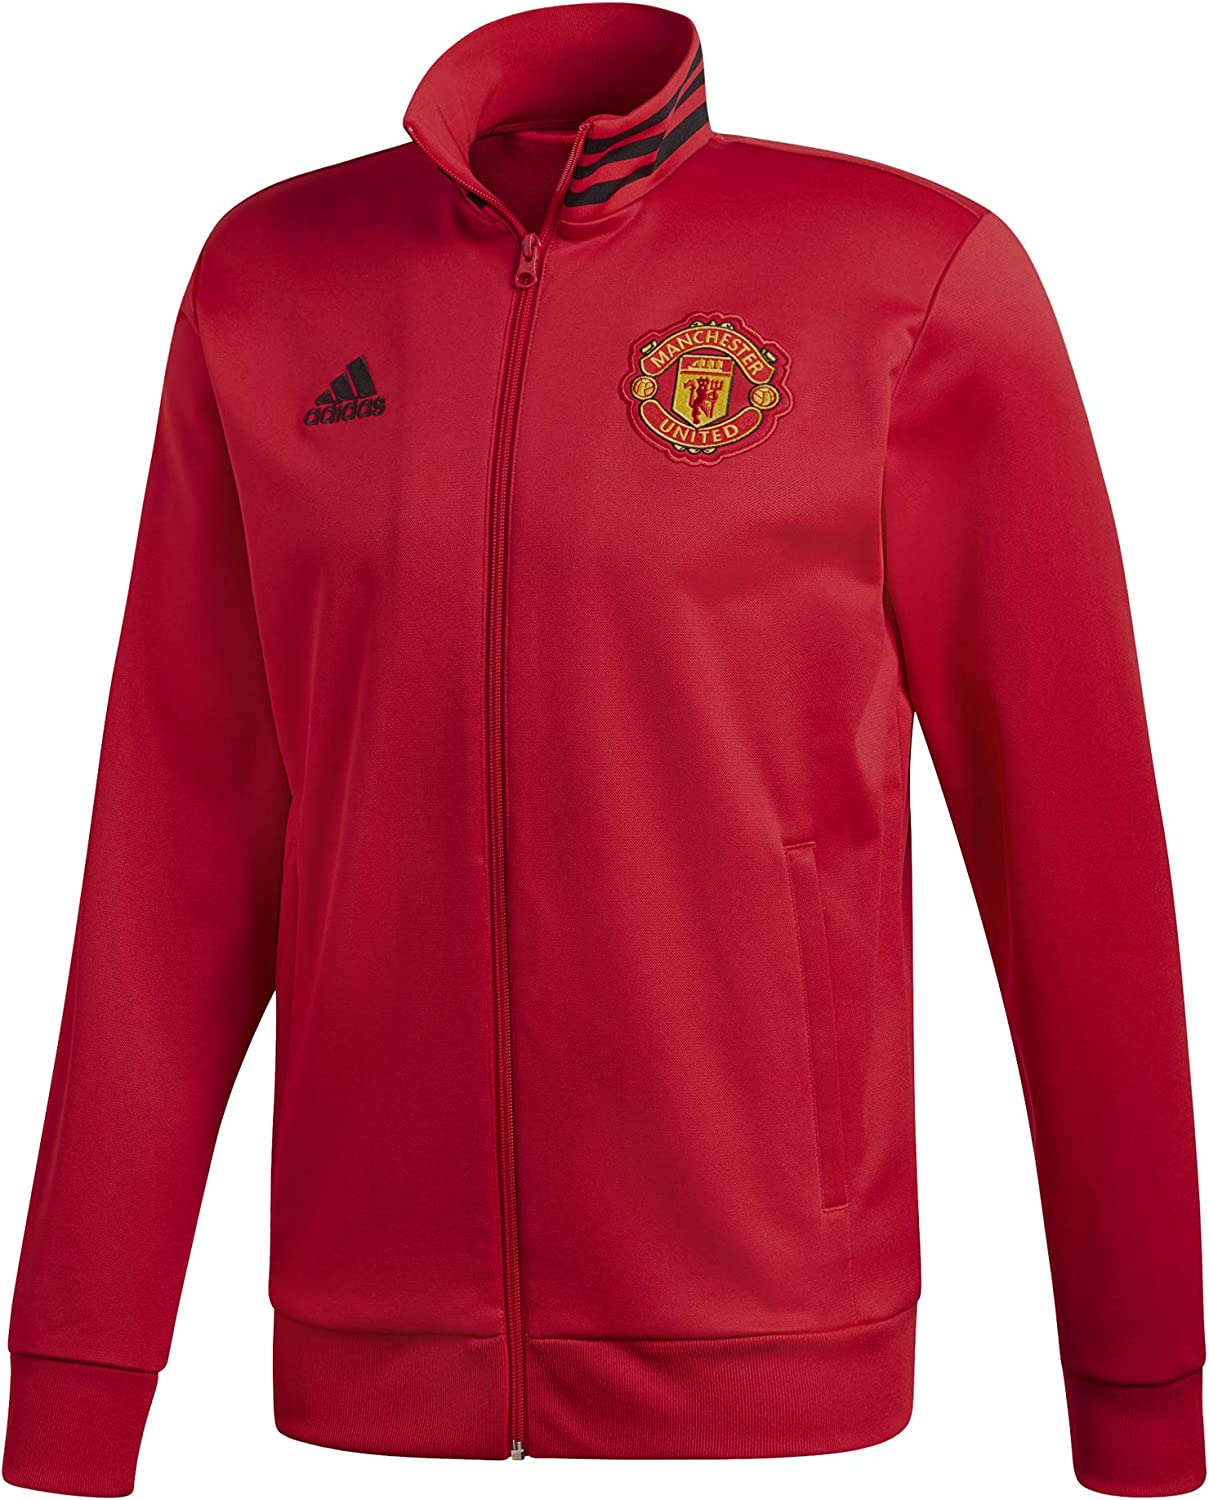 Adidas Herren Manchester United 3s Track Top Trainingsjacke Trainingsjacke Trainingsjacke B07FTTHNJB  Jugend 97871b